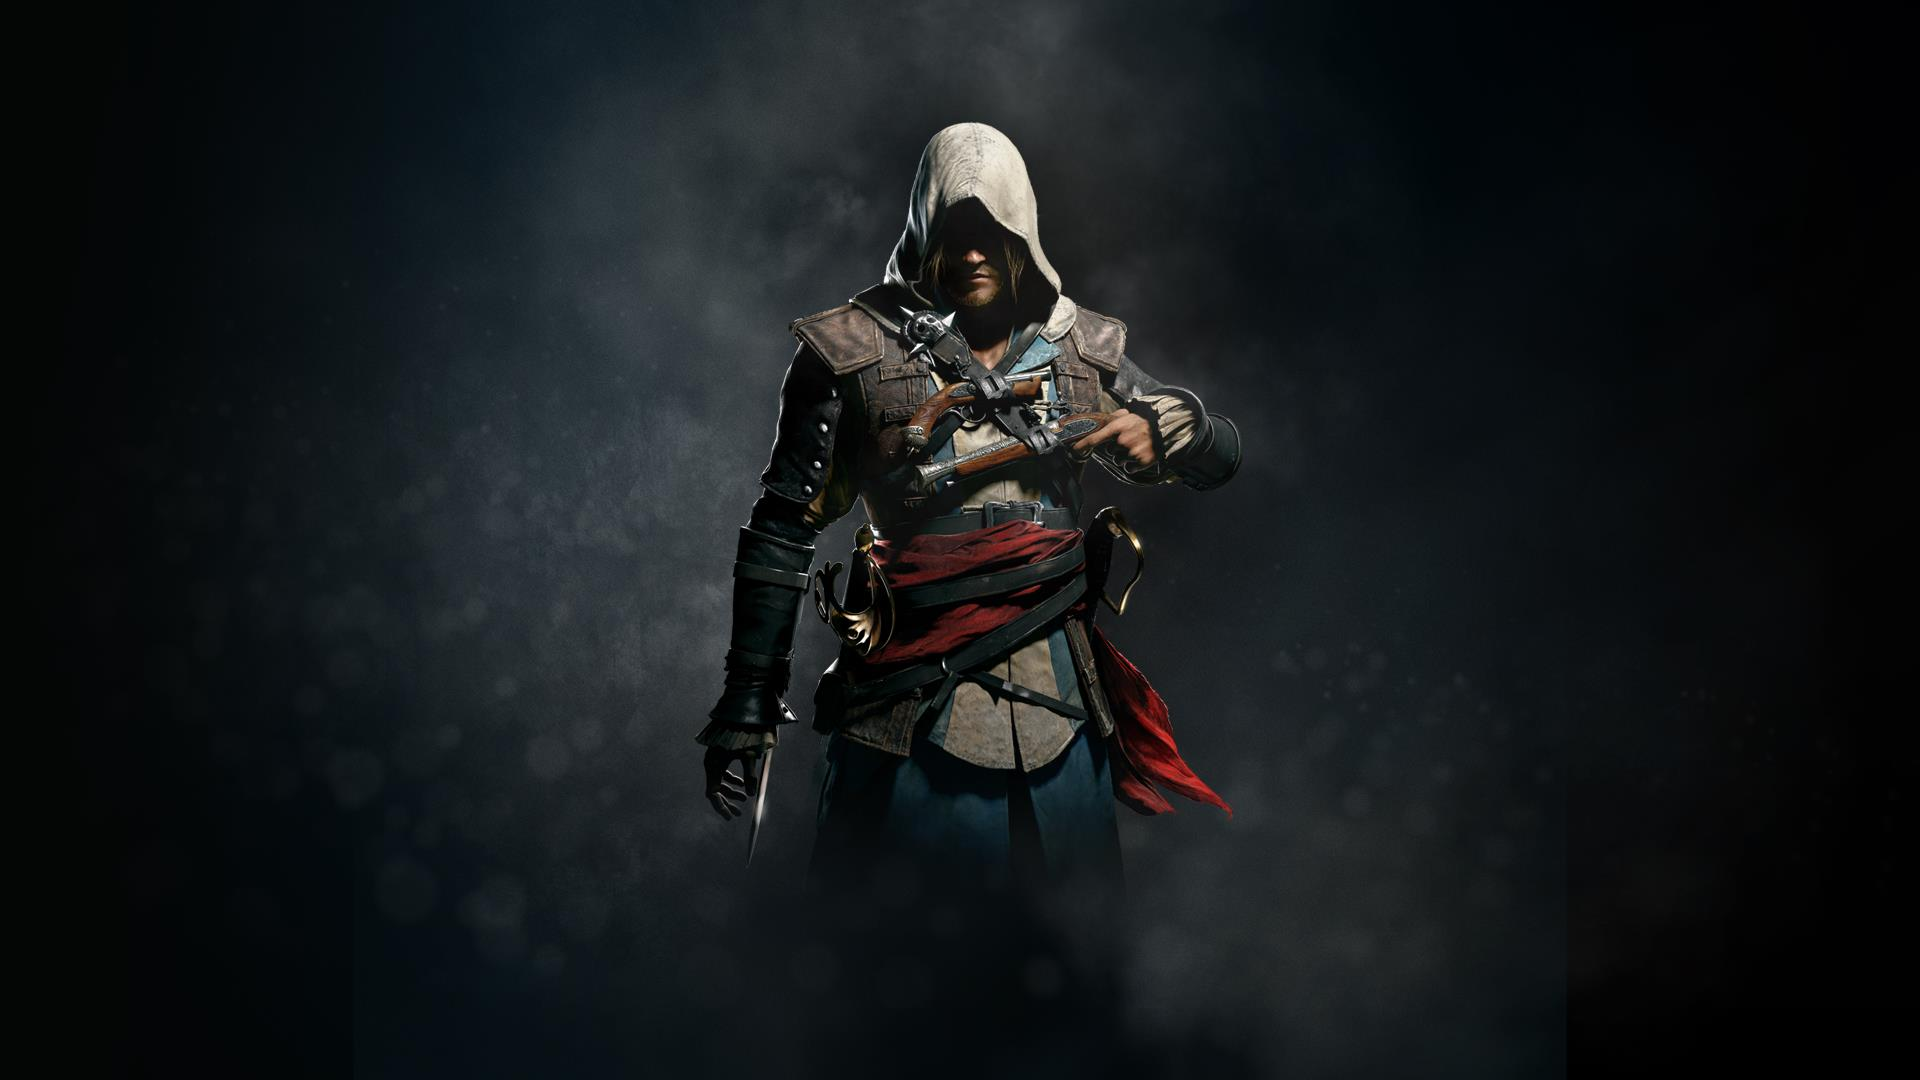 Vault Raider in Assassin's Creed IV: Black Flag